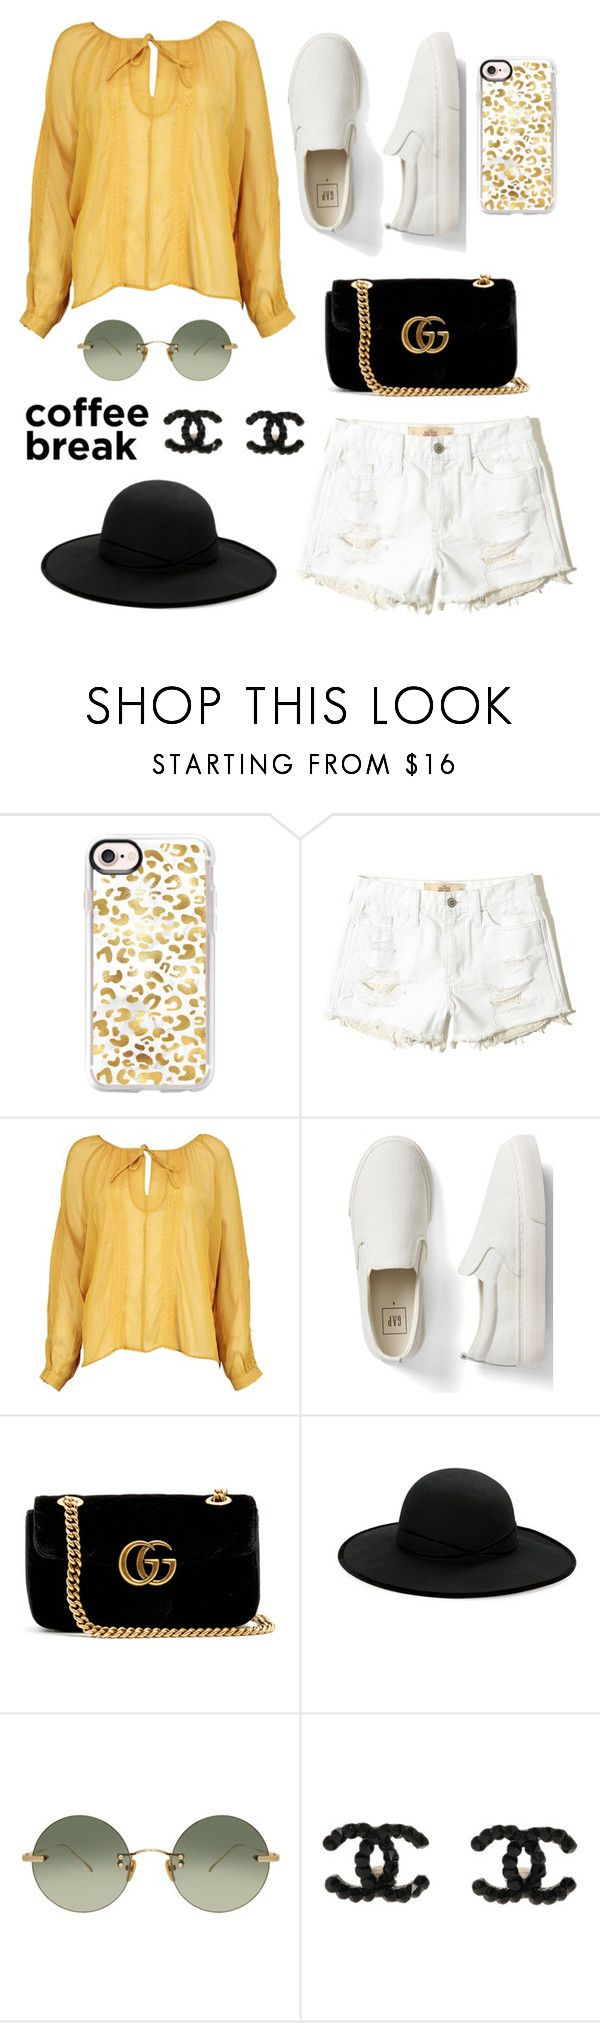 """""""Sunny"""" by ravenclaw-phoenix on Polyvore featuring Casetify, Hollister Co., Boohoo, Gap, Gucci, Betmar and Linda Farrow"""